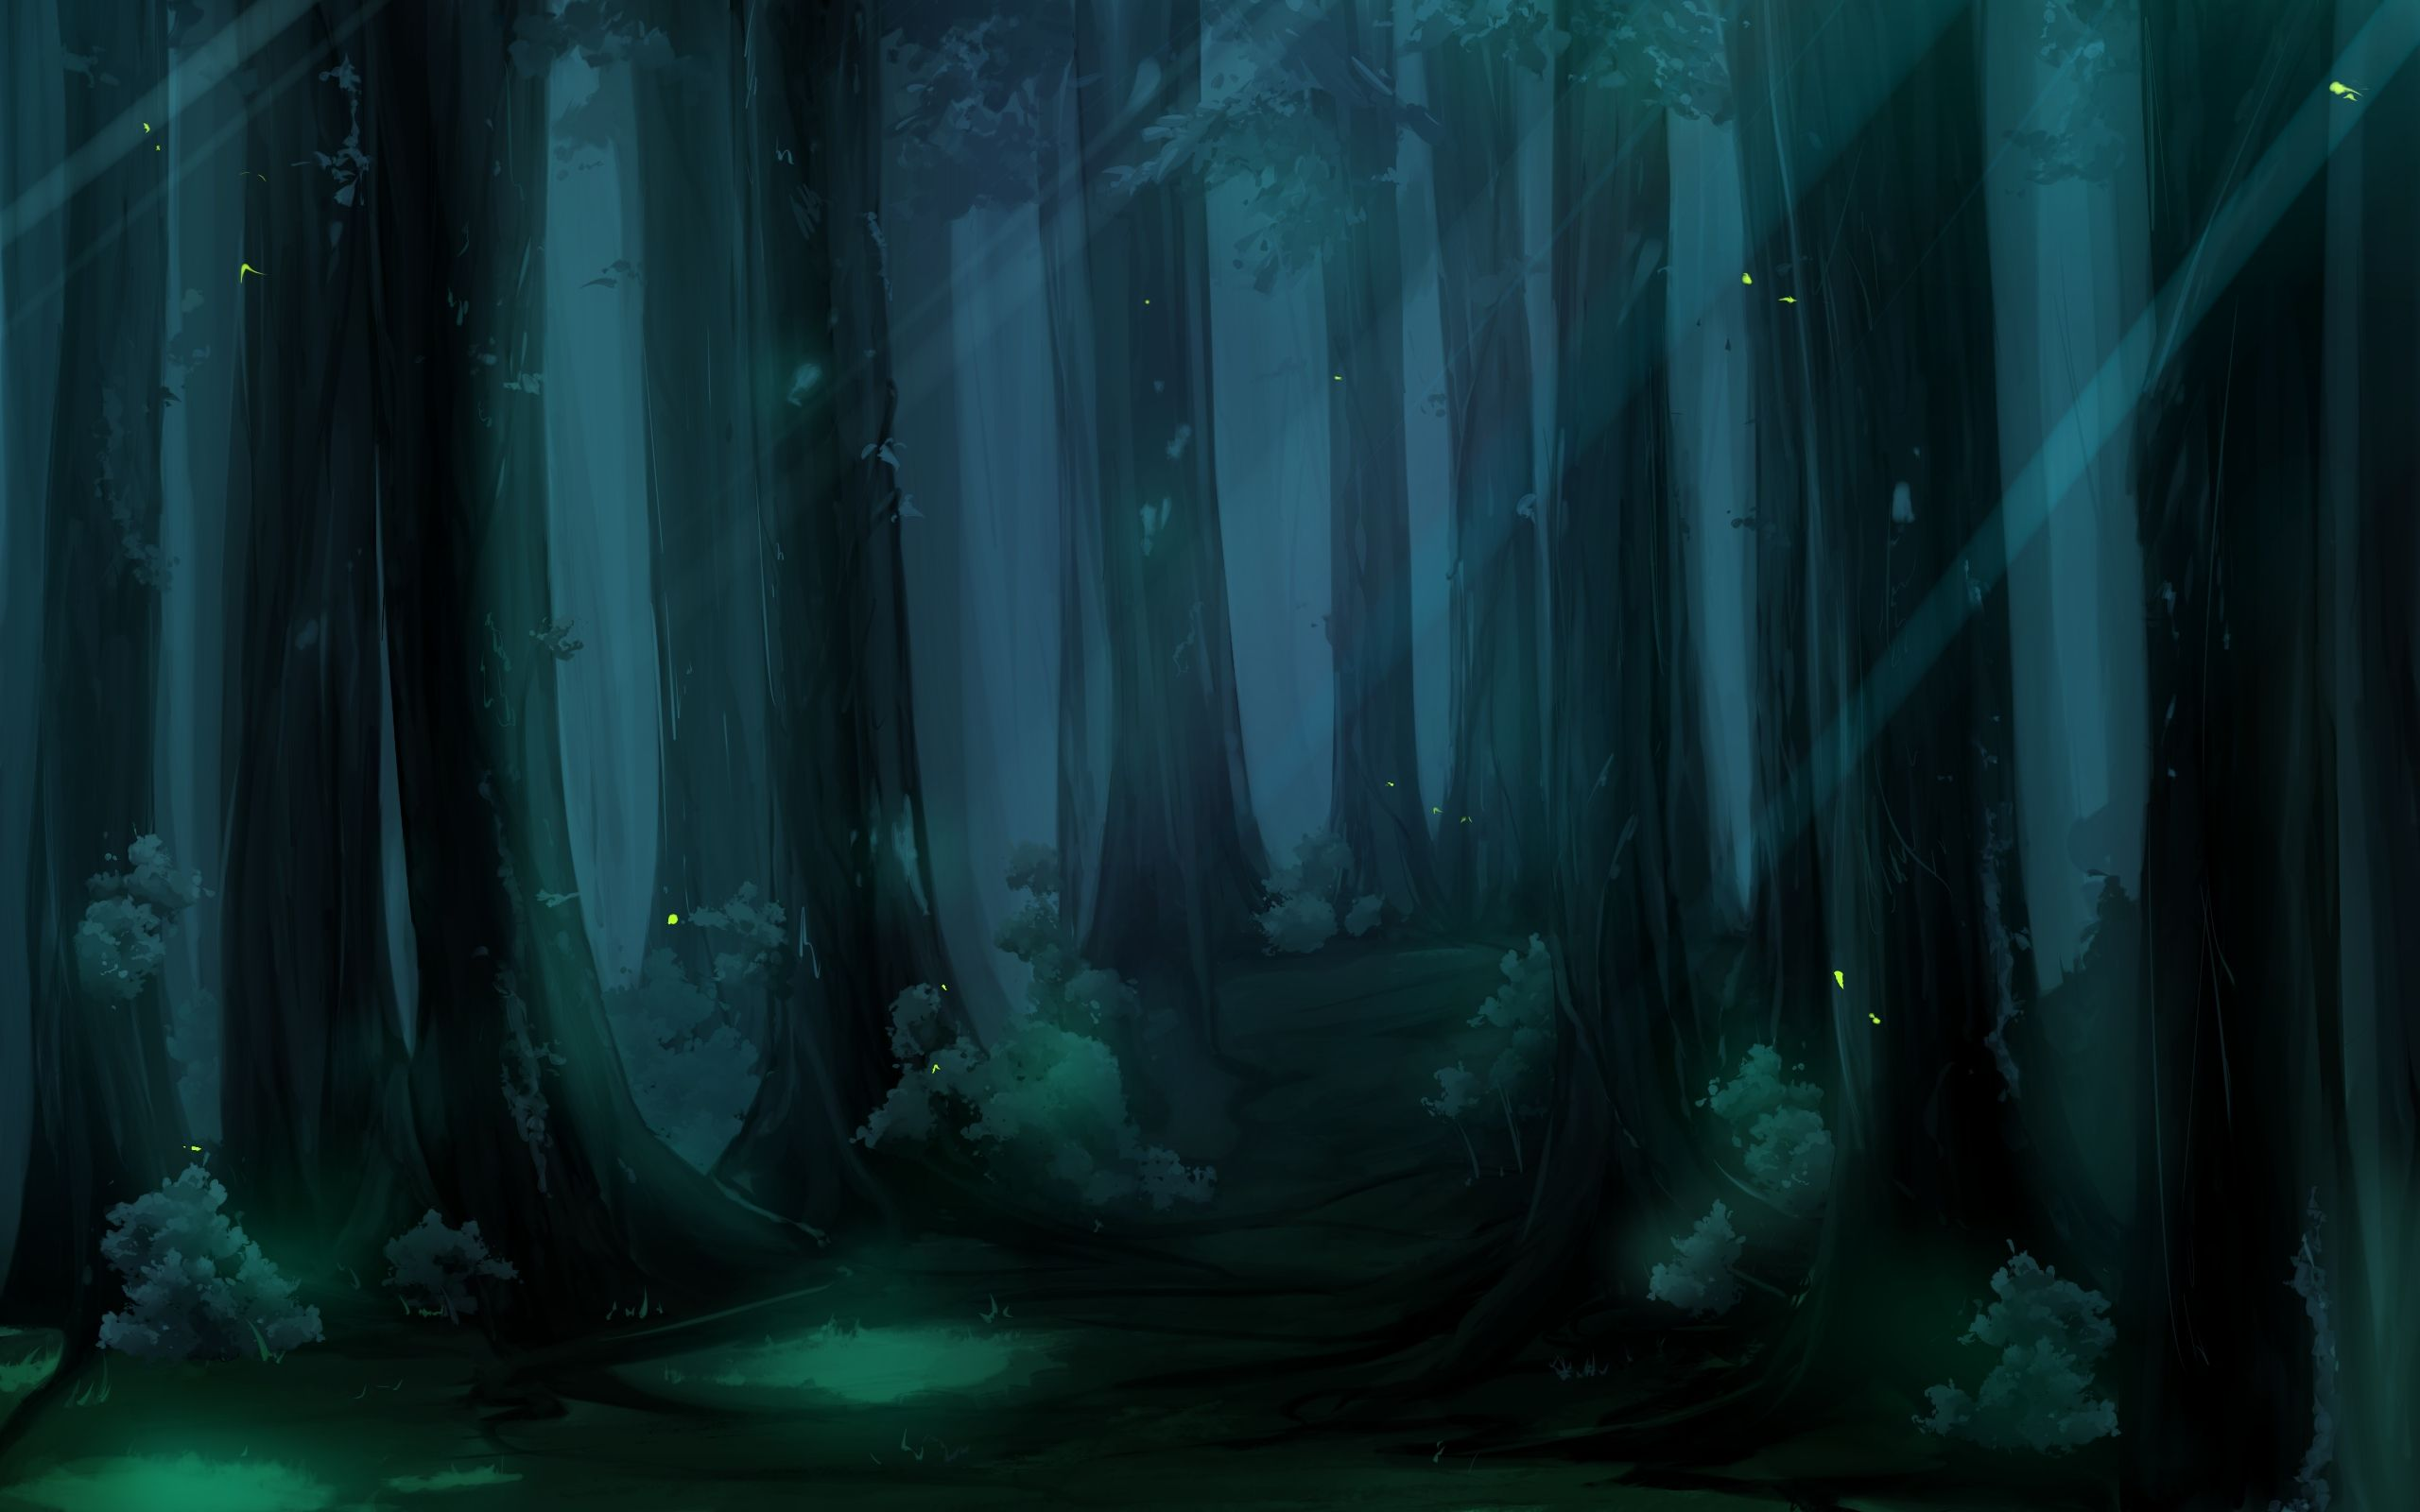 Nature anime scenery background wallpaper resources - Anime forest background ...